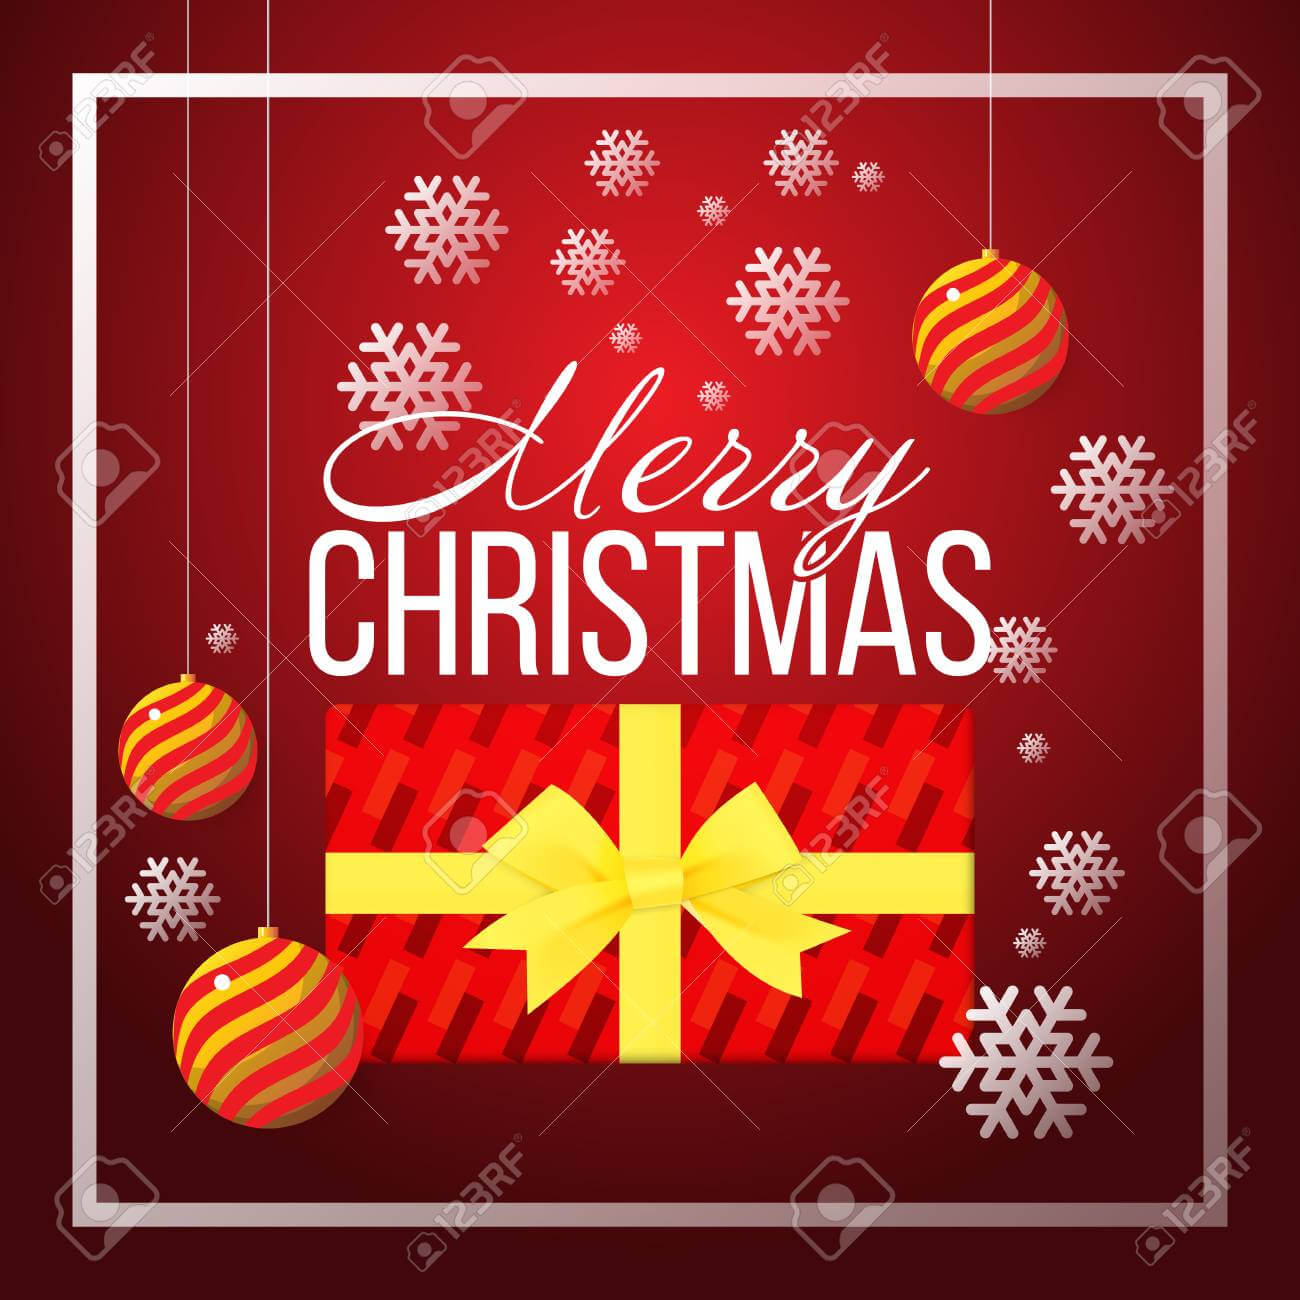 Christmas Banner Template Background With Merry Christmas Greeting.. intended for Merry Christmas Banner Template